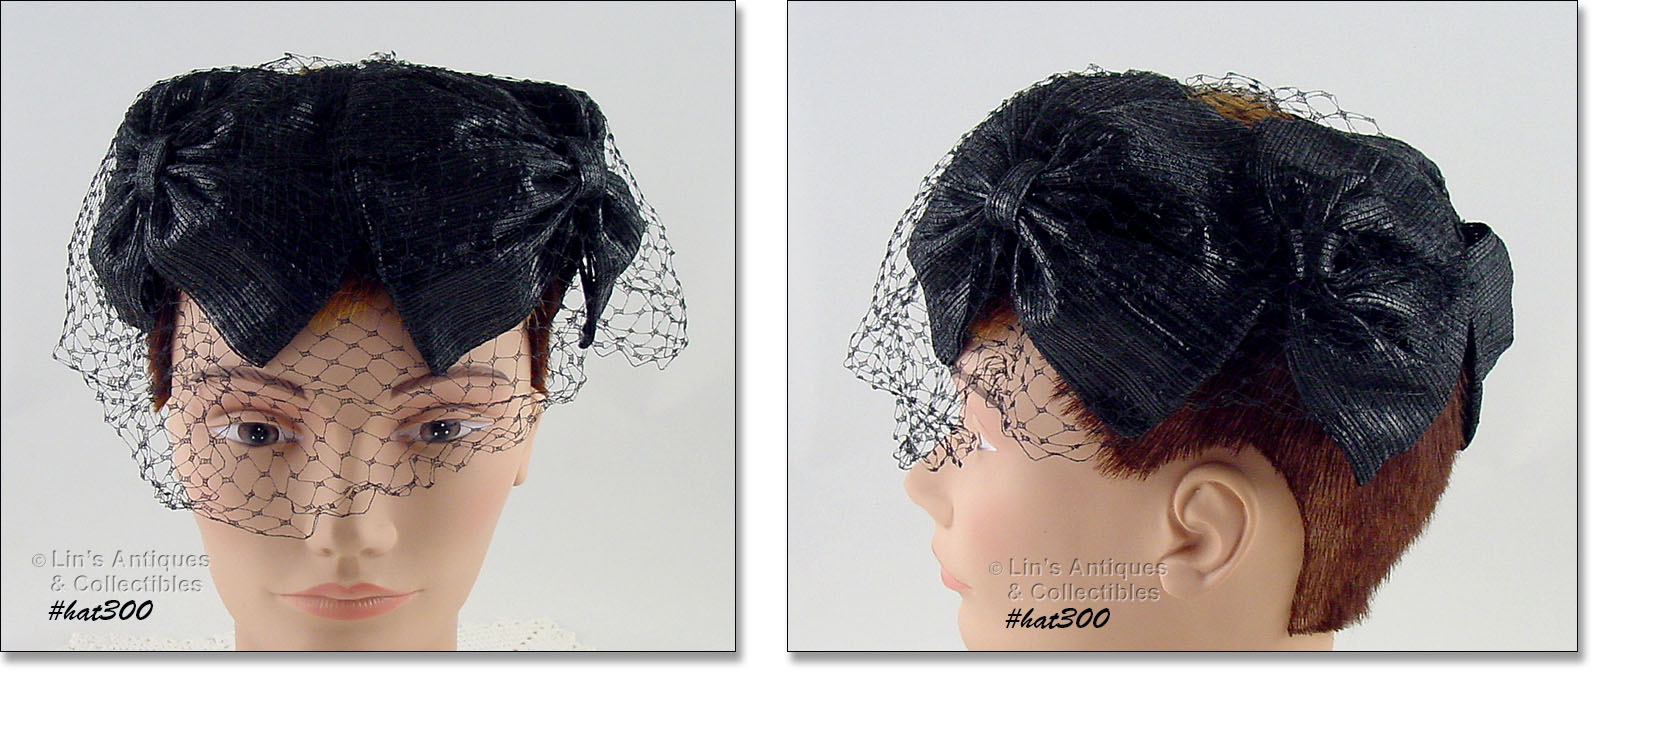 594db25f7ab BEAUTIFUL BLACK HAT WITH BLACK NETTING VEIL! HAT DESIGN IS OF JOINED LARGE  BLACK BOWS WITH ATTACHED VEIL – UNUSUAL AND REALLY NEAT!